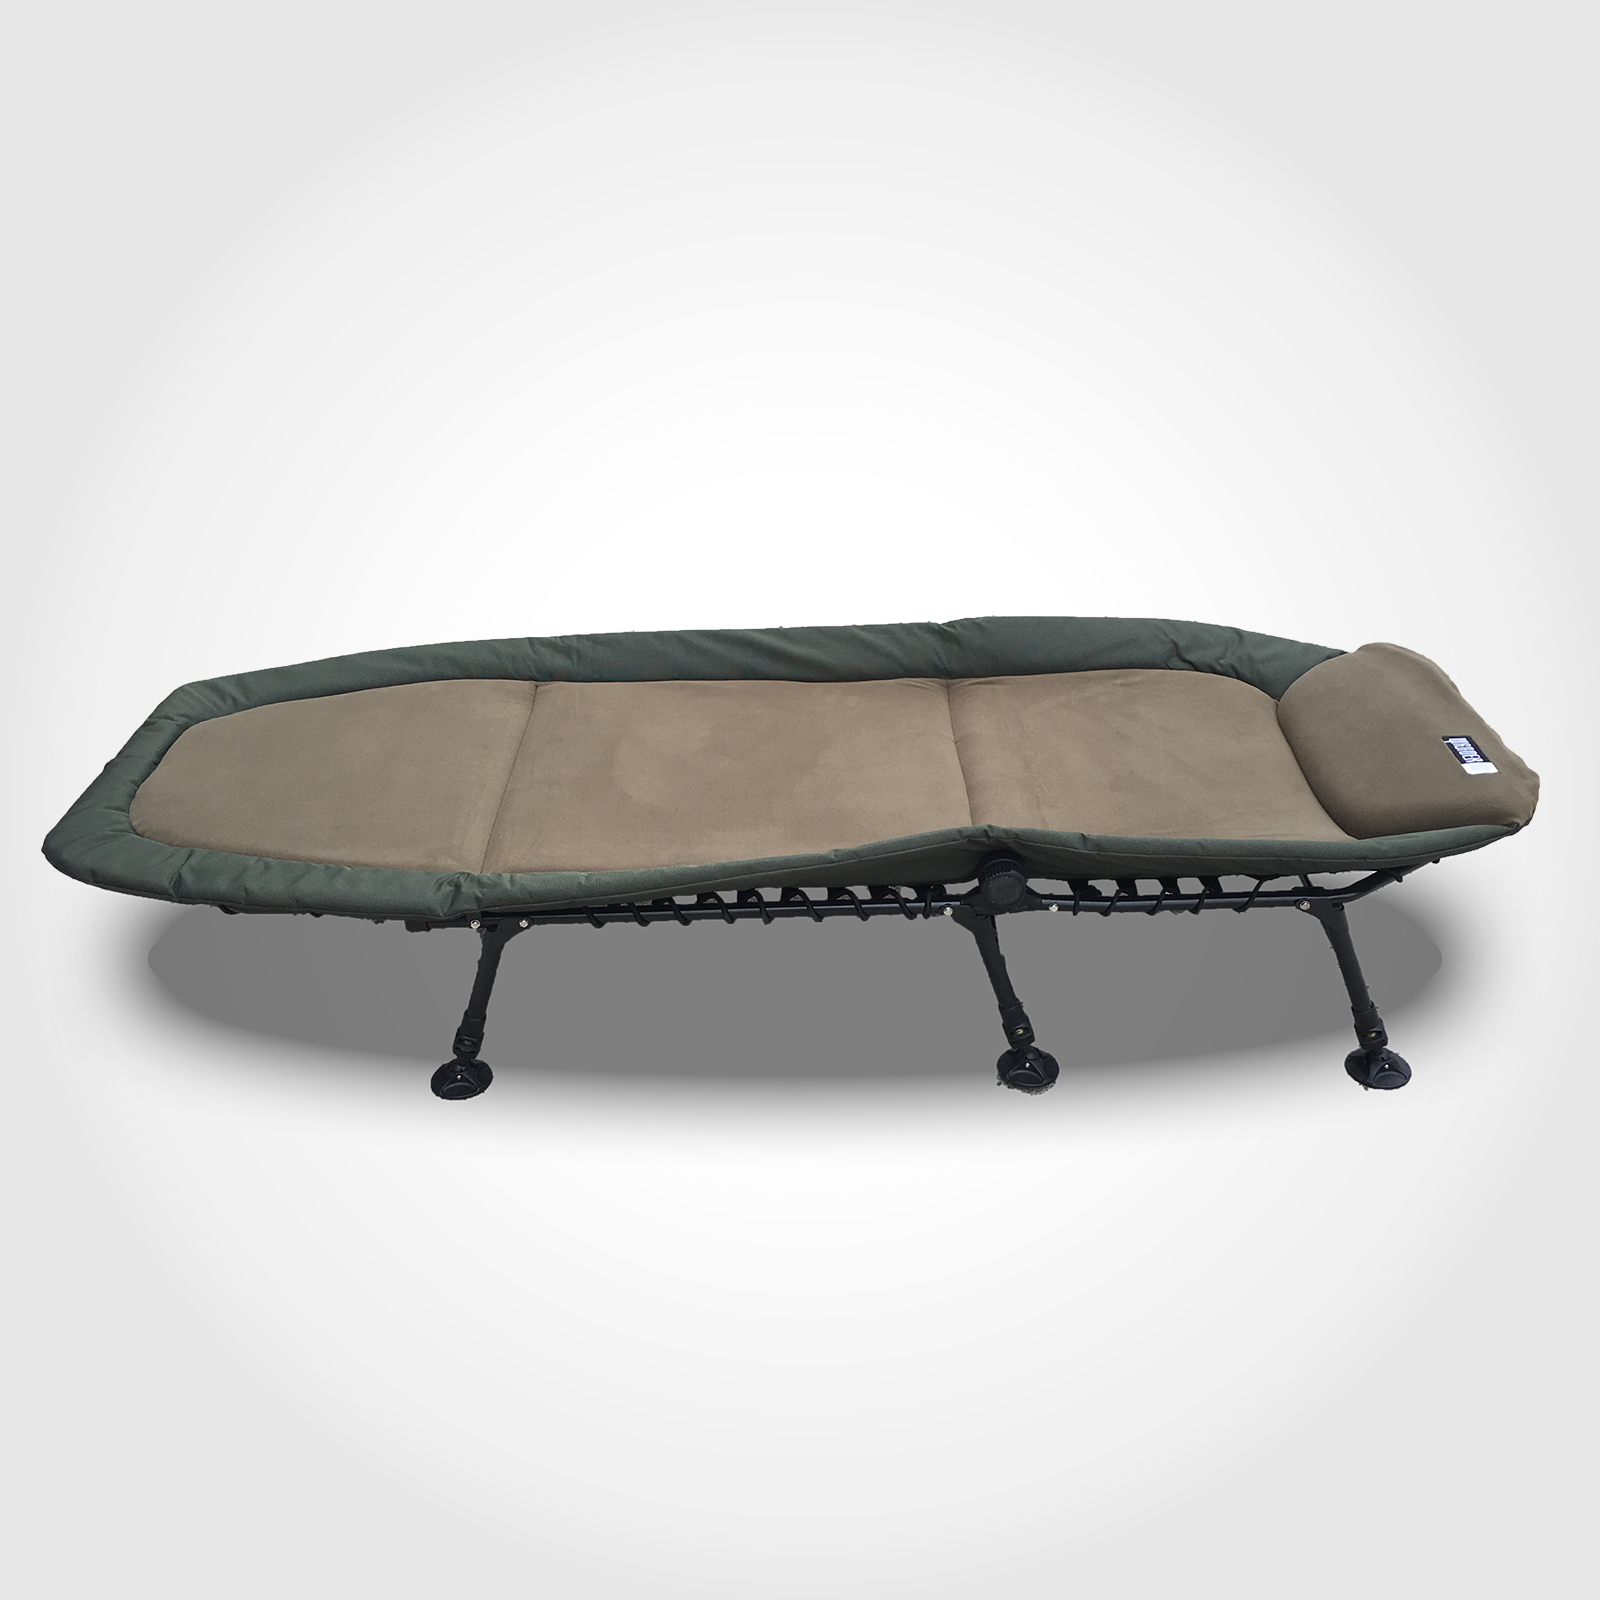 inflatable chair canada vanity chairs wander oz fold-out stretcher sleeping bed